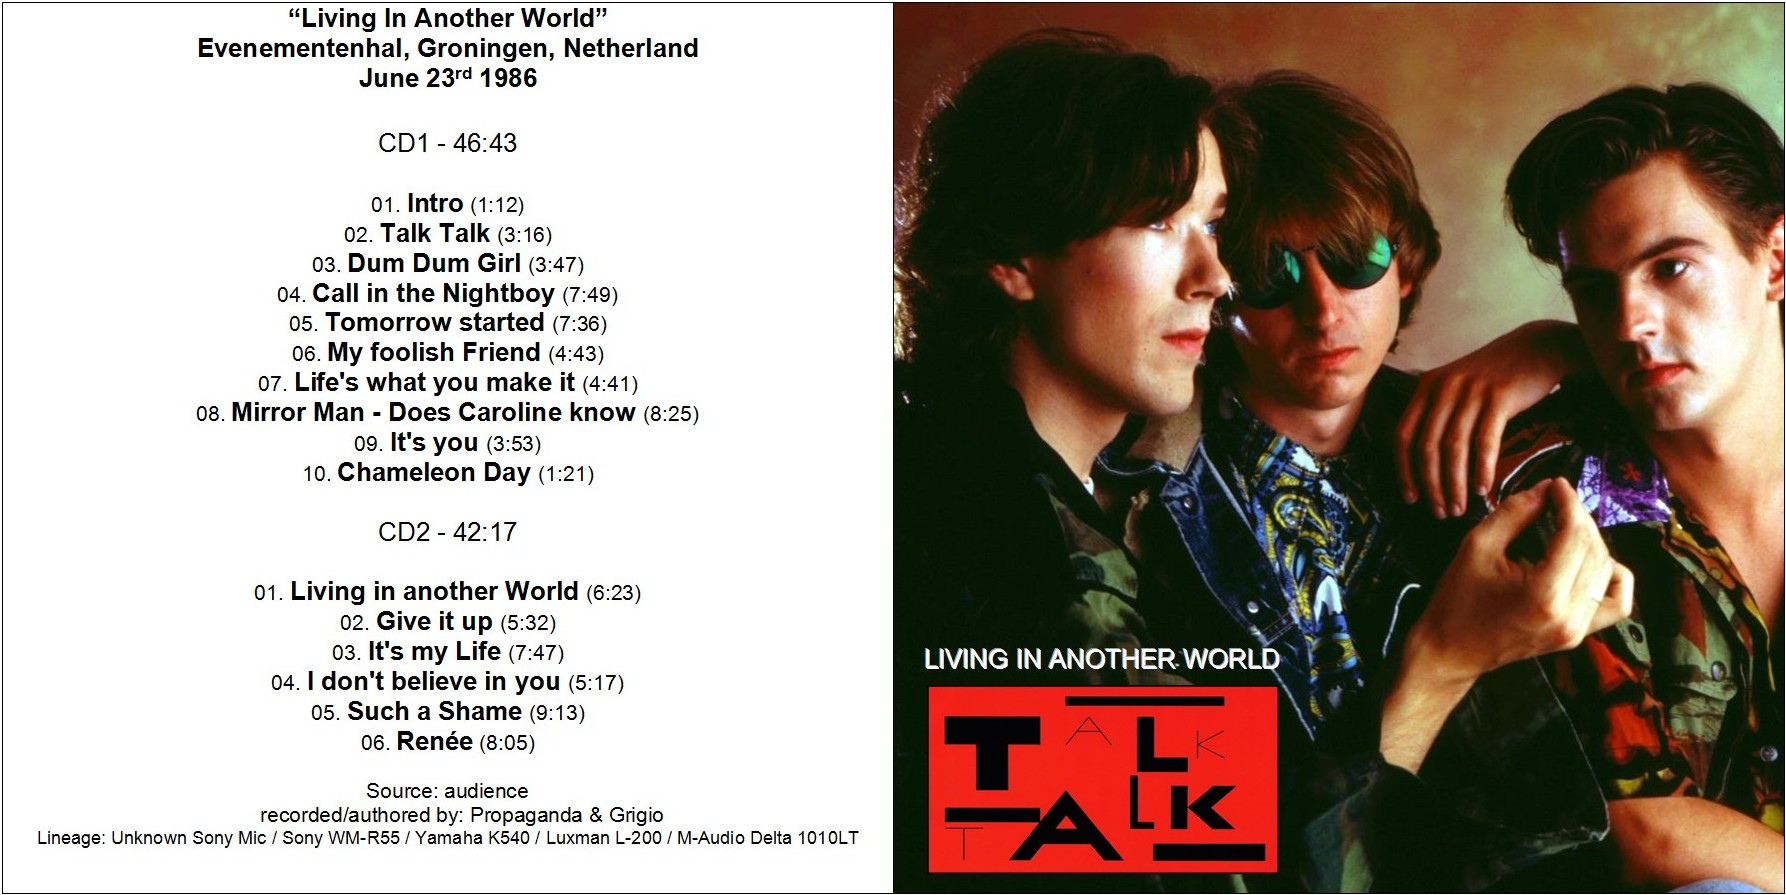 1986-06-23-Living_In_Another_World-front